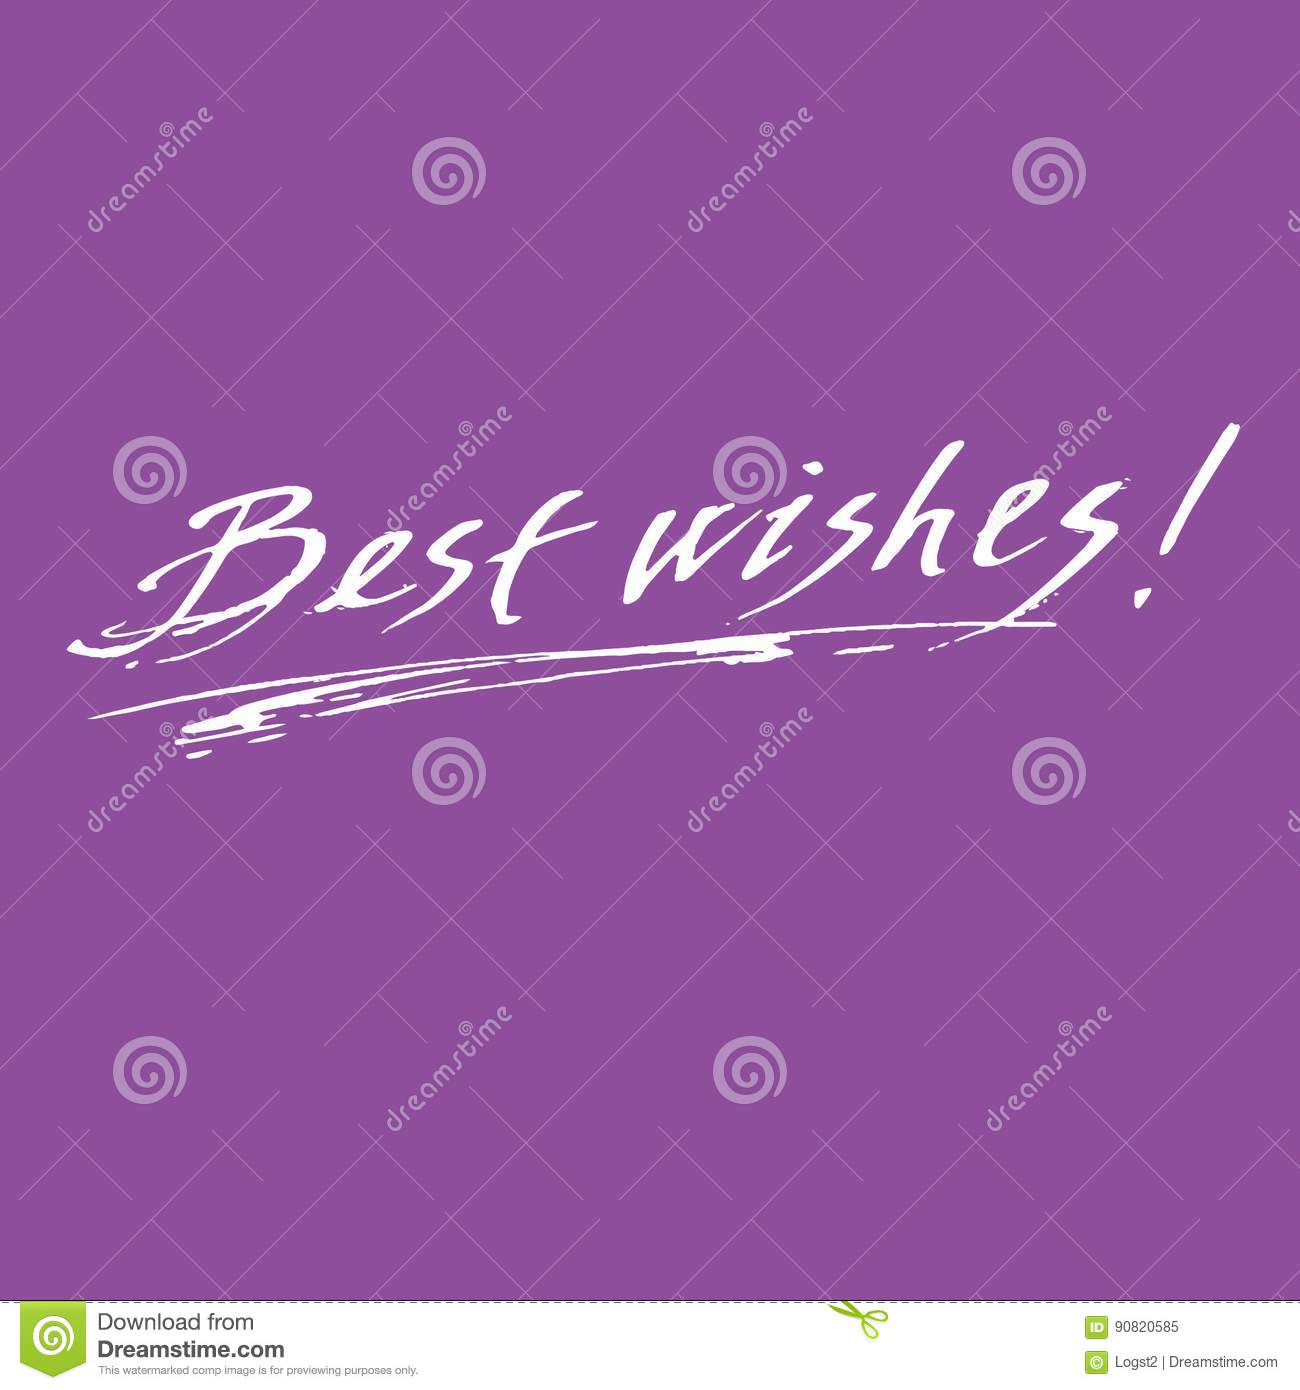 Best wishes calligraphic inscription vector